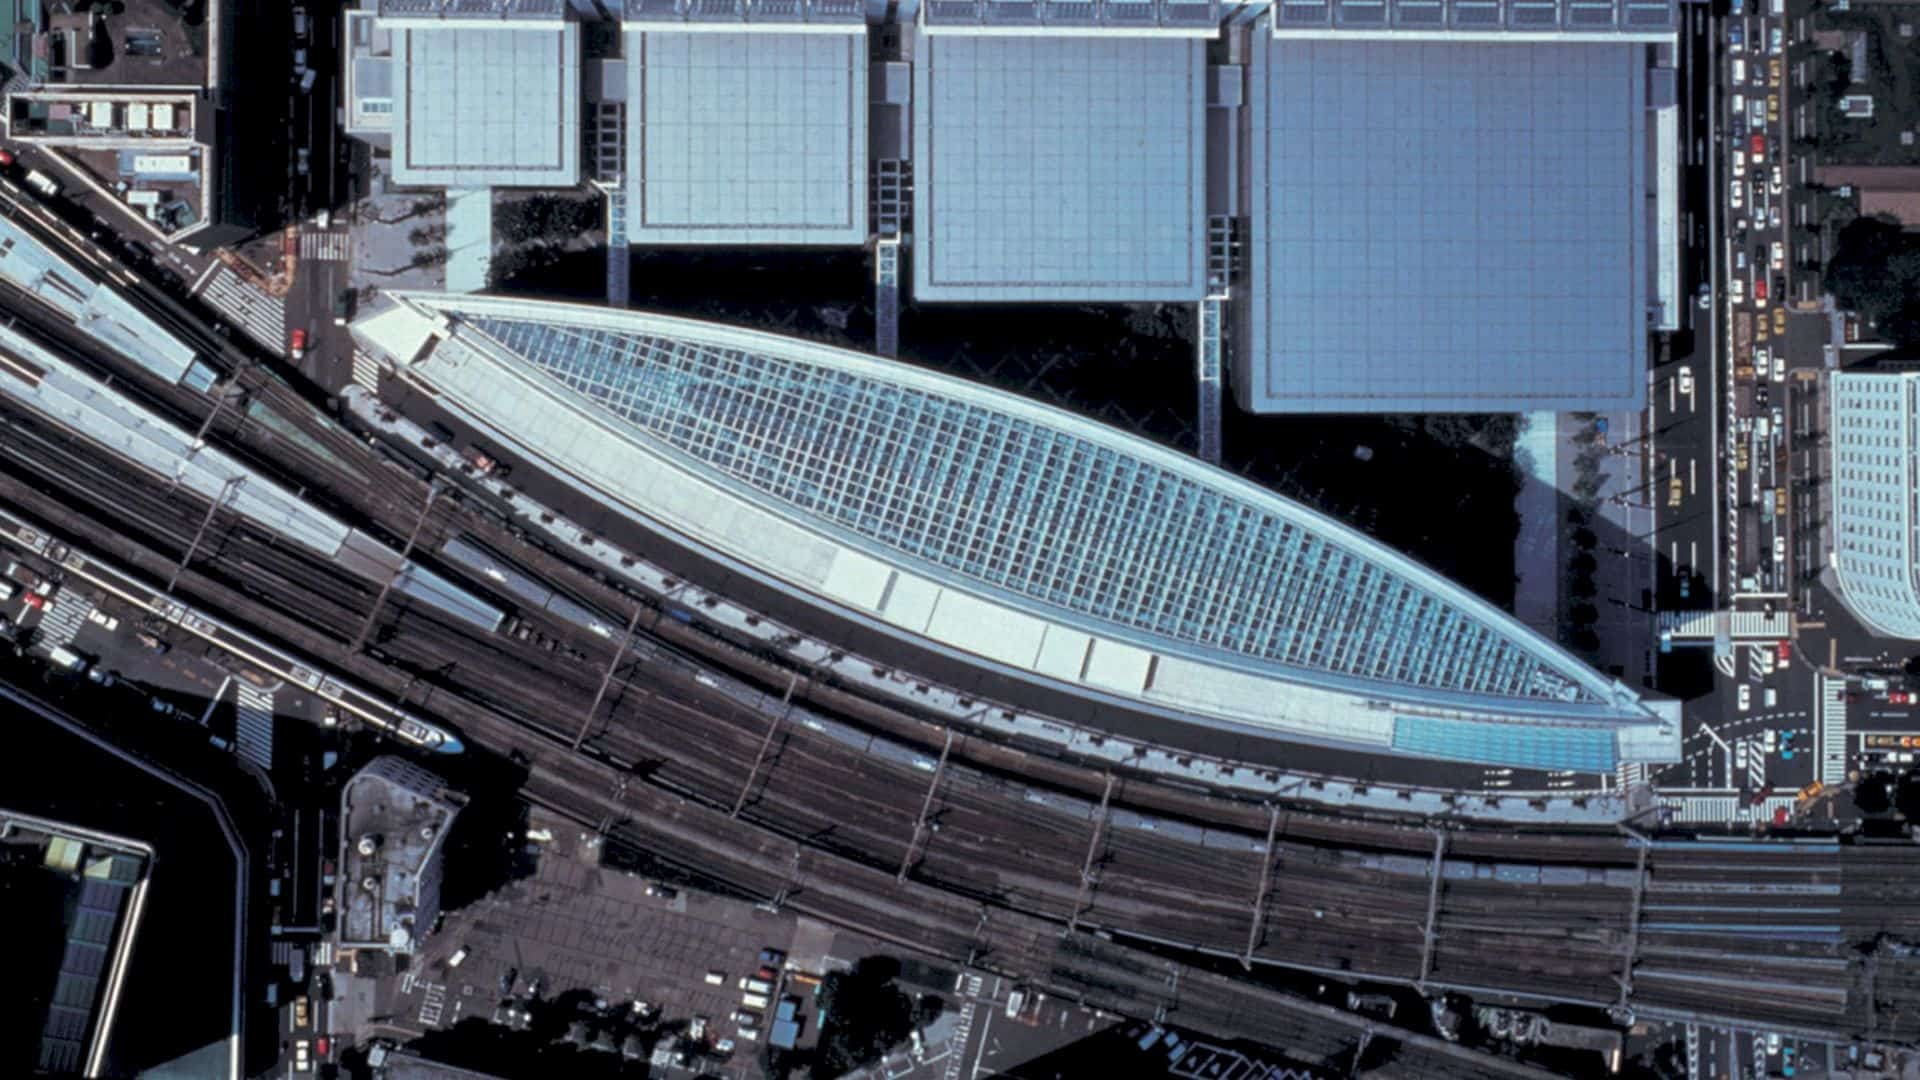 Tokyo International Forum By Rafael Viñoly Architects 16